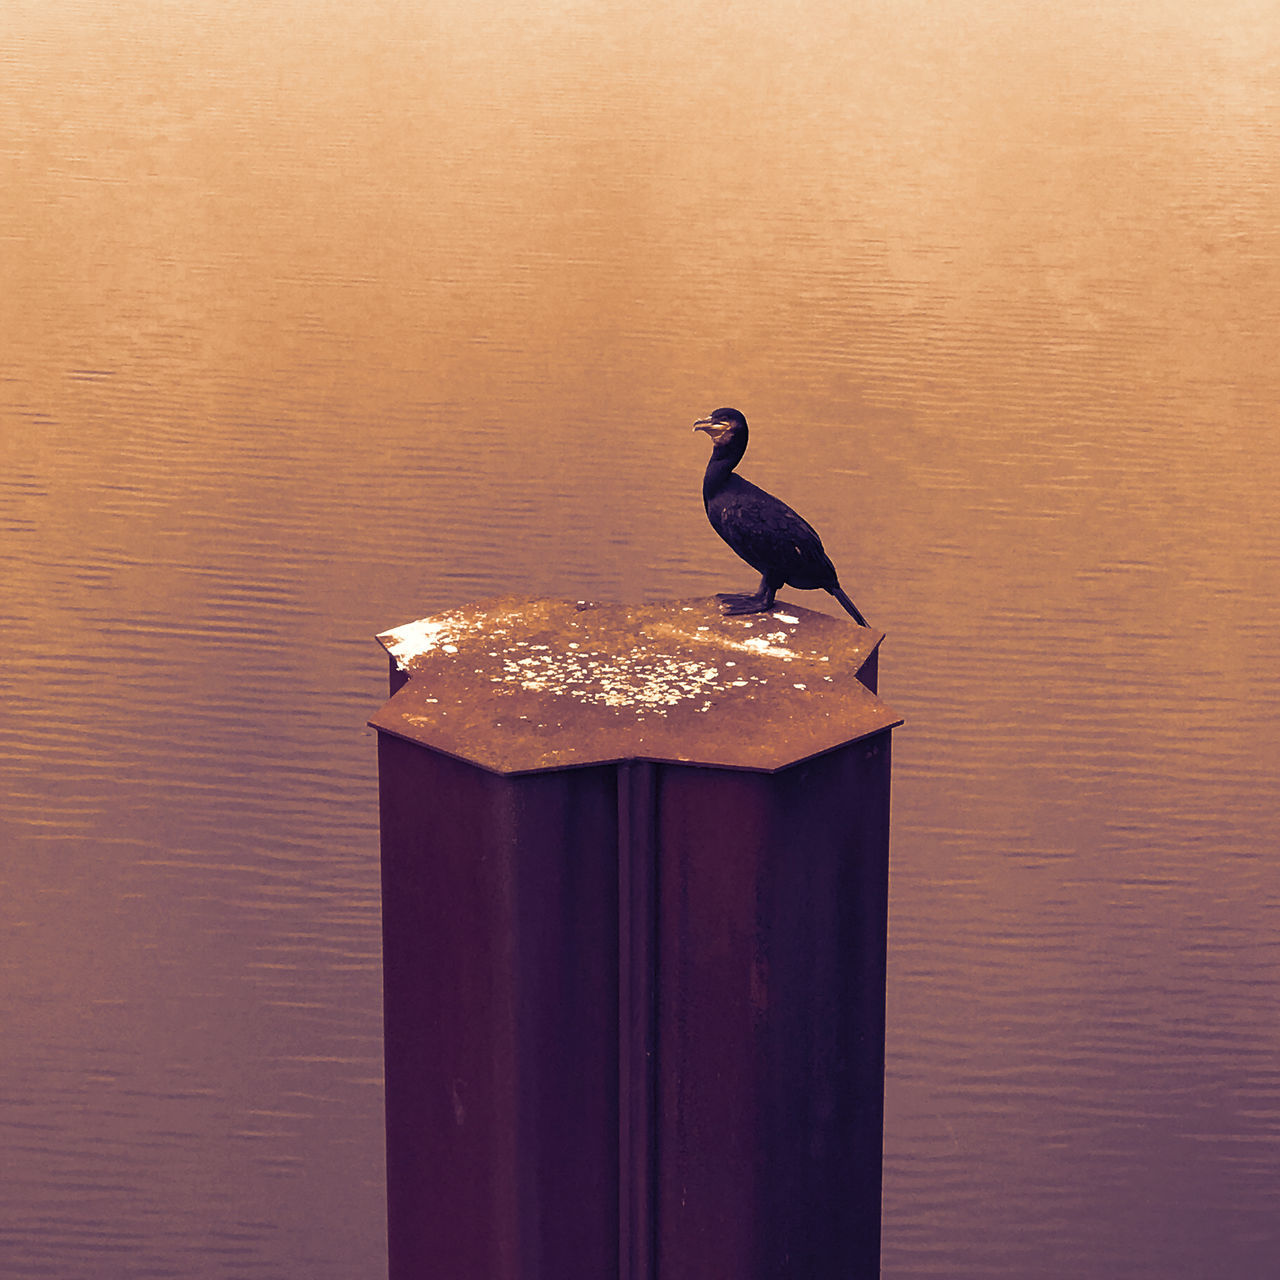 bird, animal themes, animals in the wild, perching, animal wildlife, no people, one animal, water, nature, day, close-up, outdoors